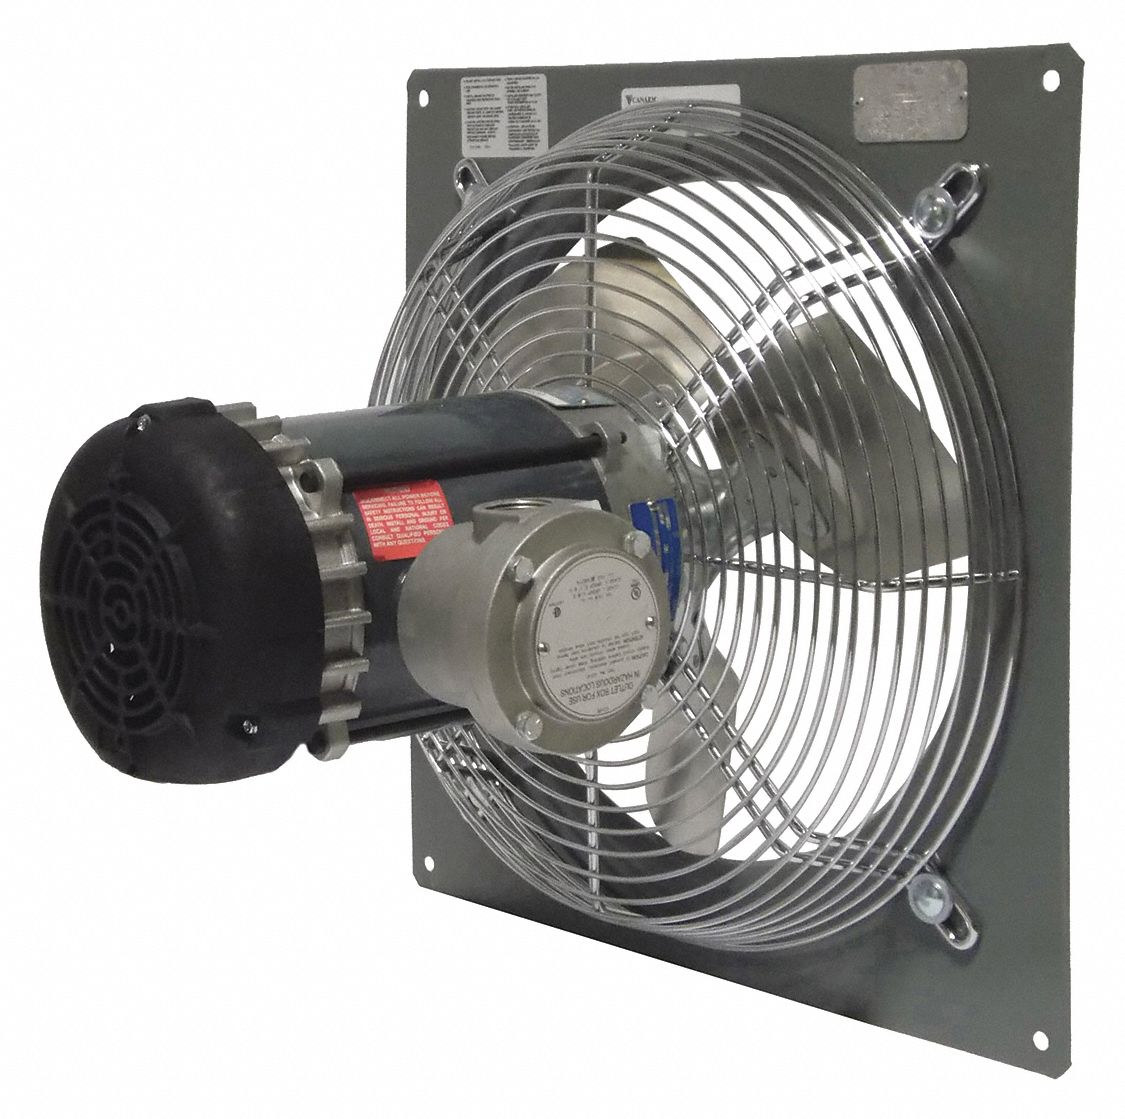 1/3 hpHP 115/208-230V ACV Panel Mounted Explosion Proof Exhaust Fan